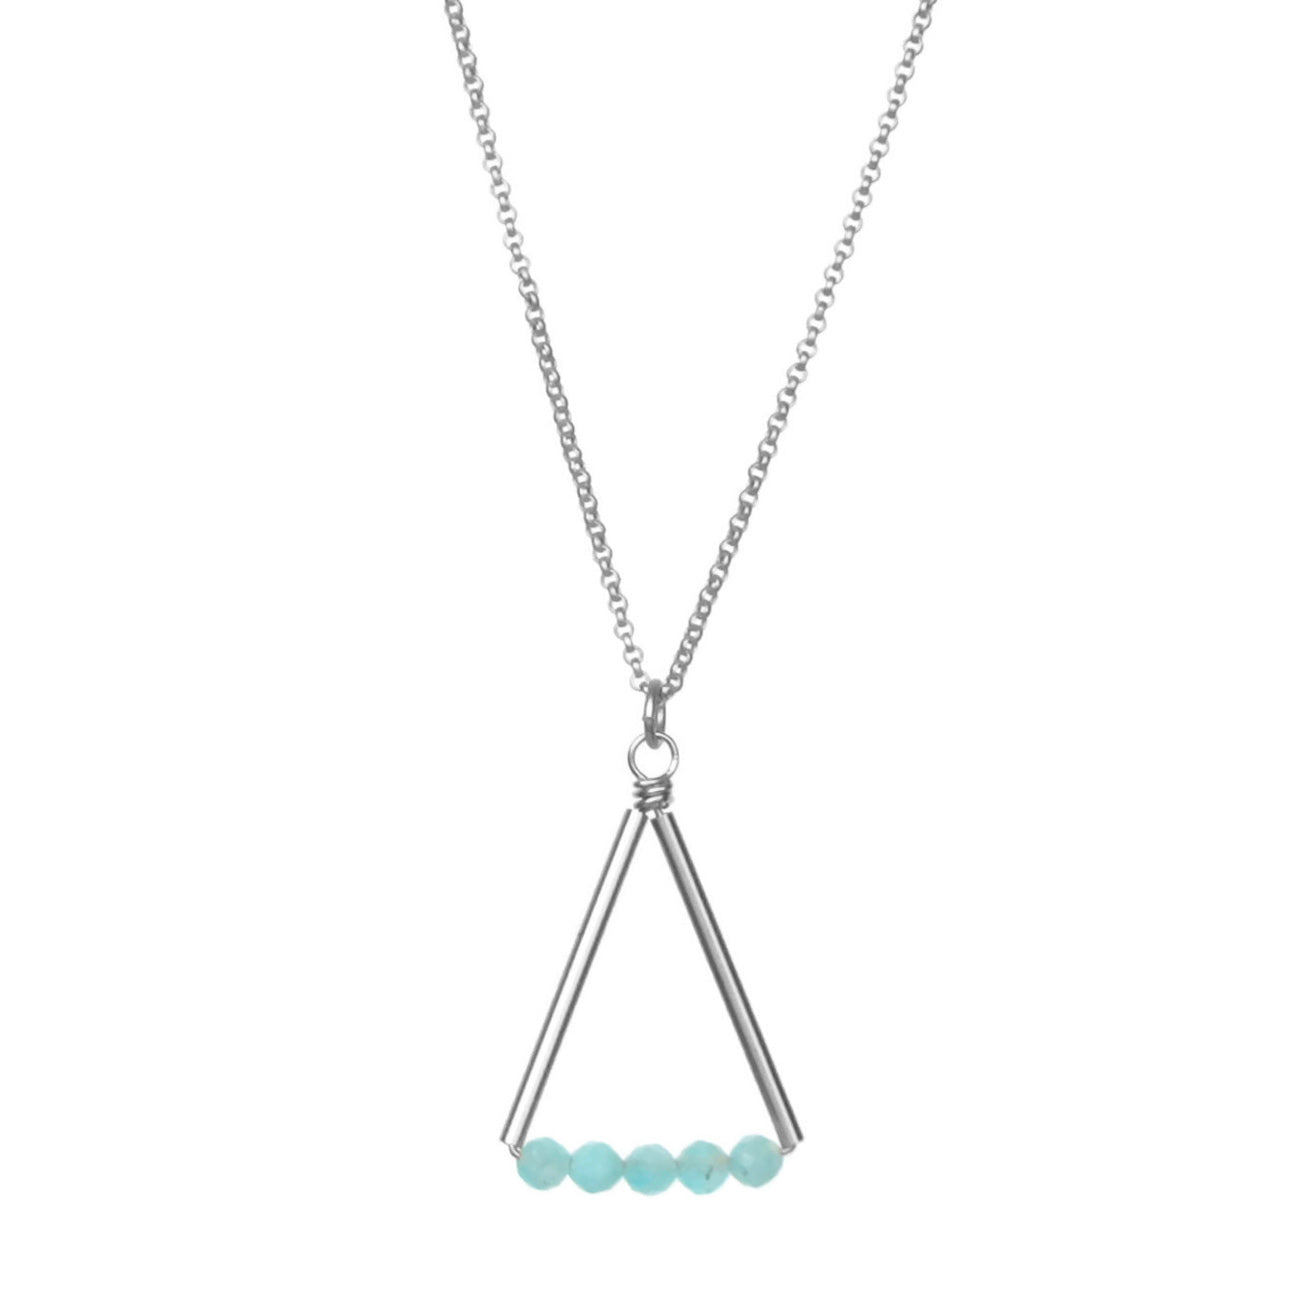 Kaylyn Necklace - Silver